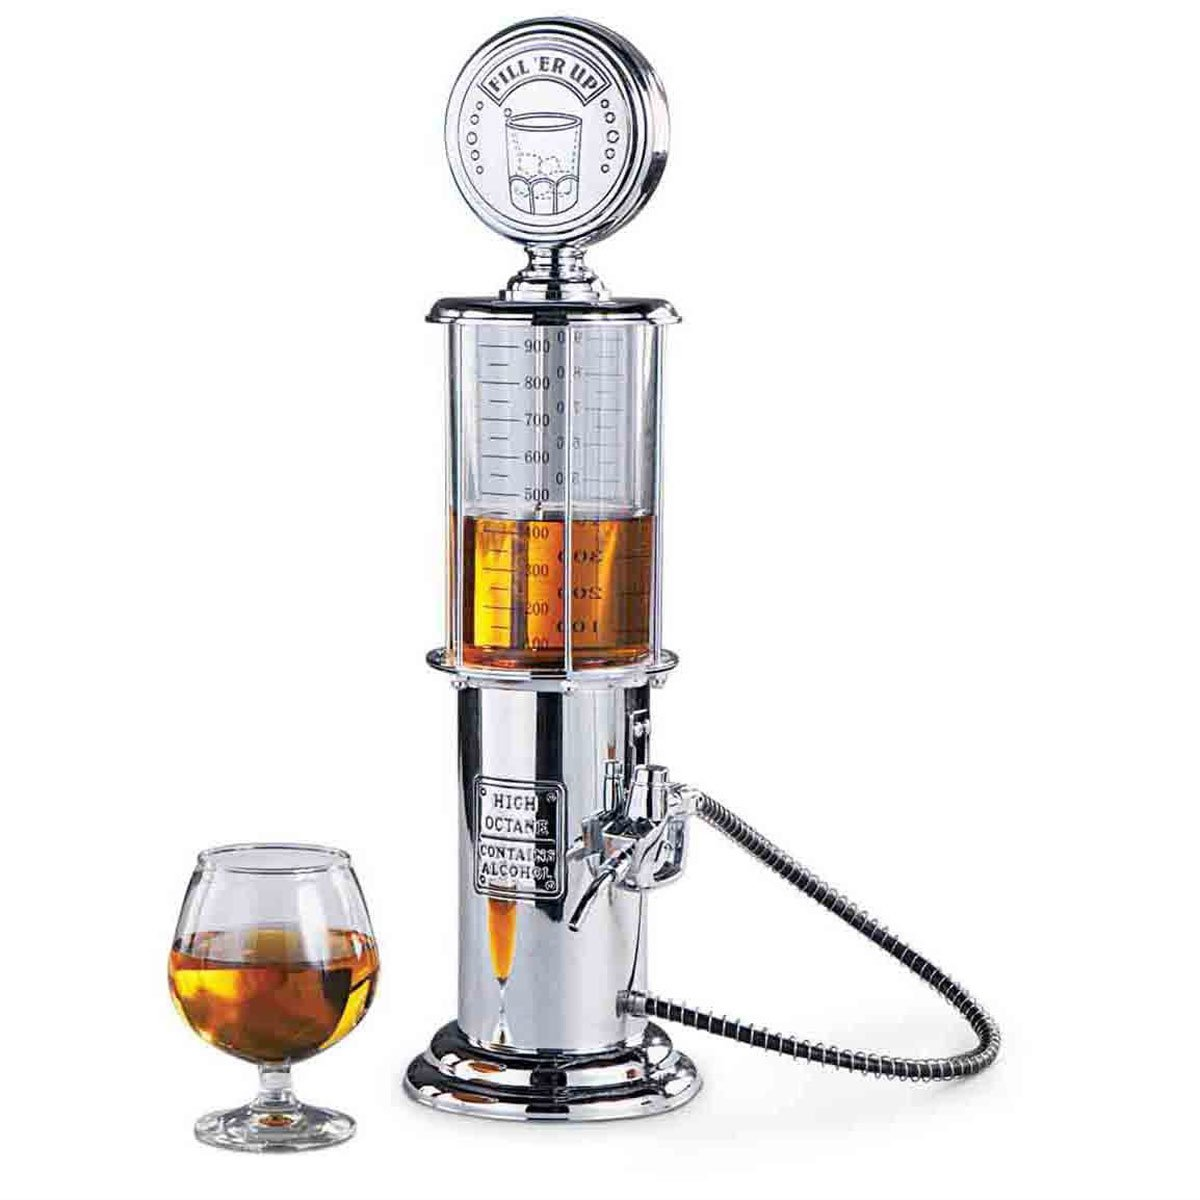 Retro Drink Dispenser in chrome-plated nostalgia design | Bar-Butler Dispenser with dispensing hose for party drinks Dispenser Biertower Beer Dispenser Dispenser Beer Column | Party Gadgets Goods & Gadgets